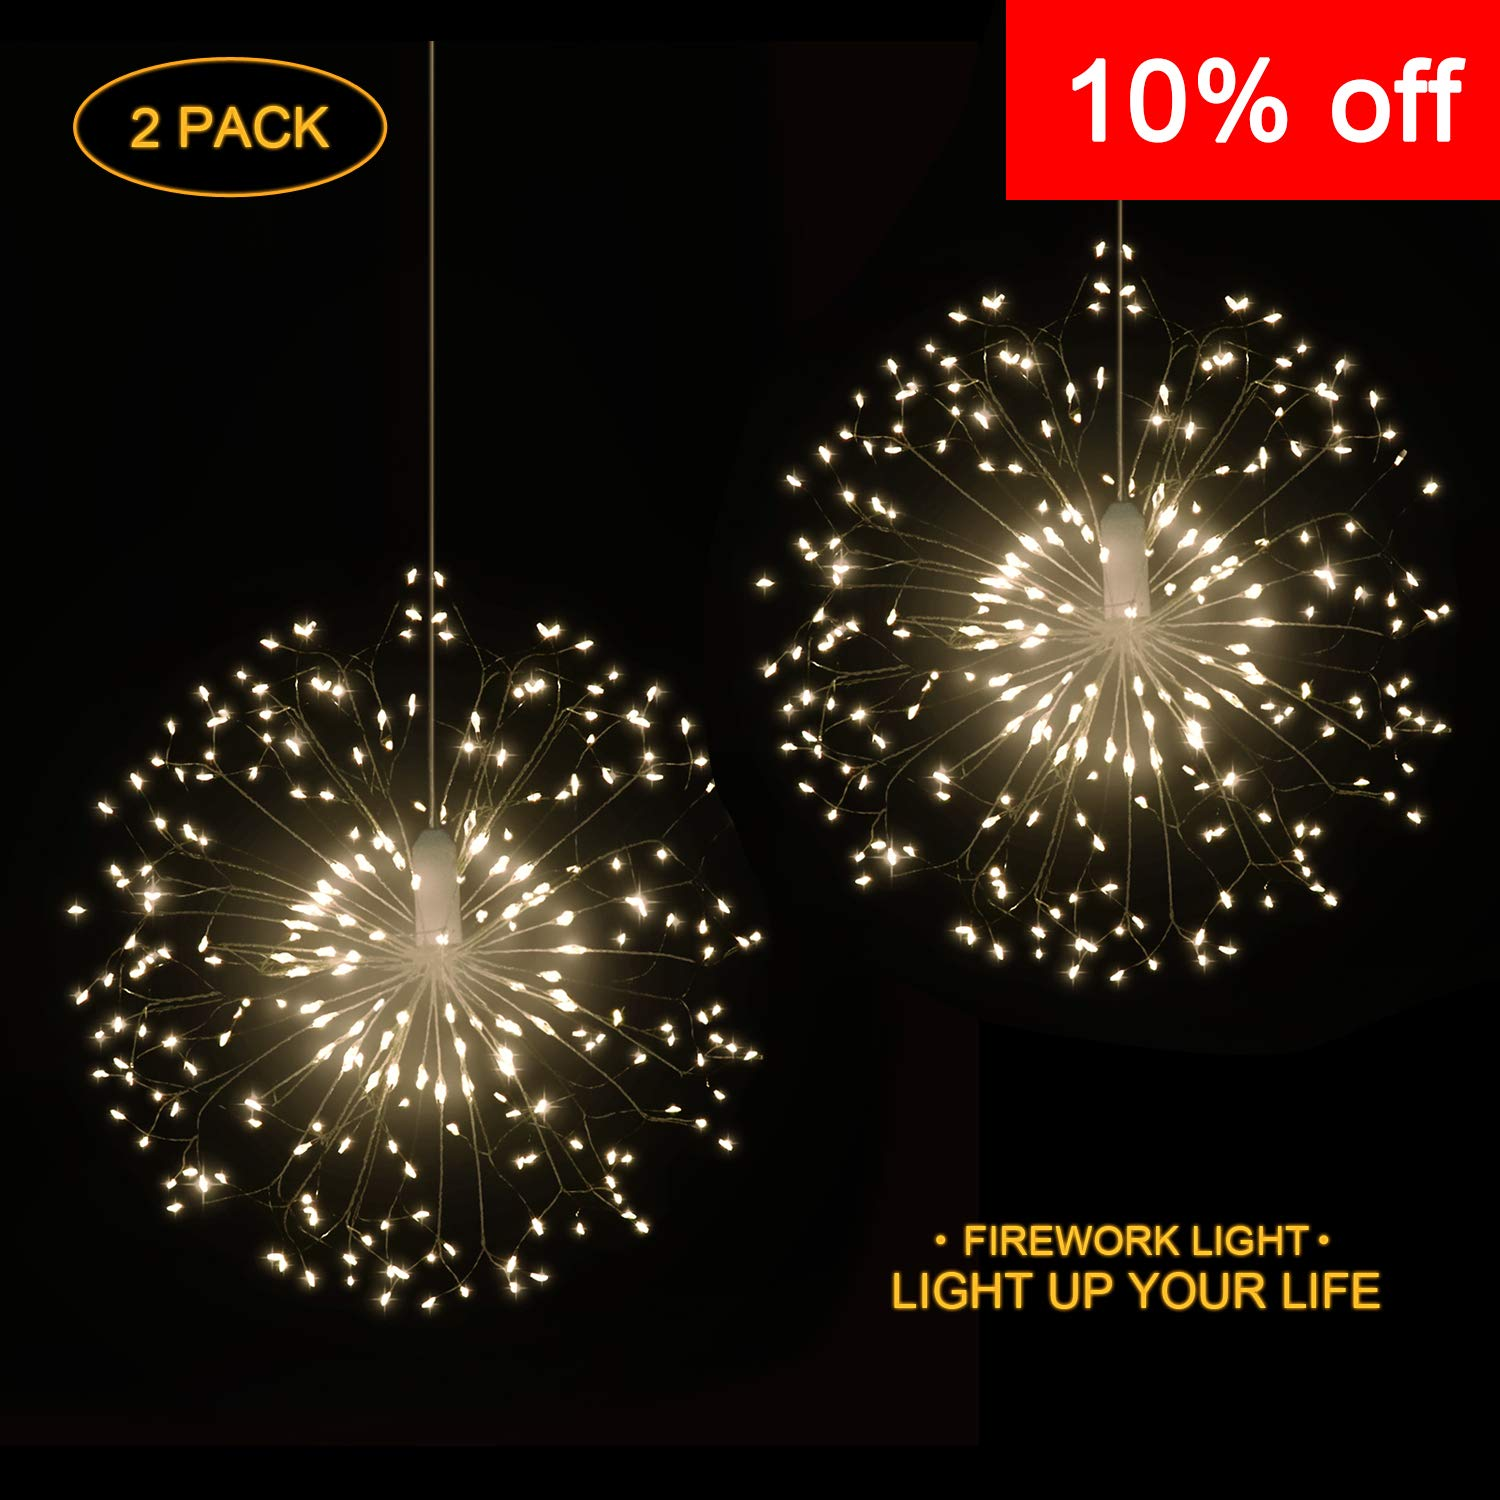 Hensun String 8 Modes Dimmable with Remote Control Battery Operated Hanging Starburst 198 LED IP44 Waterproof Decorative Wire Lights for Parties Warm White 2 Pack